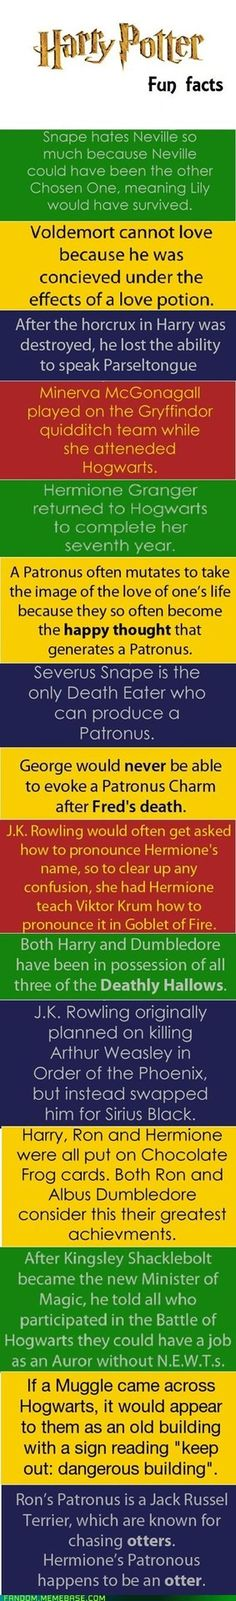 I did not know these, always fun to learn about new things. Especially when it's about your favorite books!